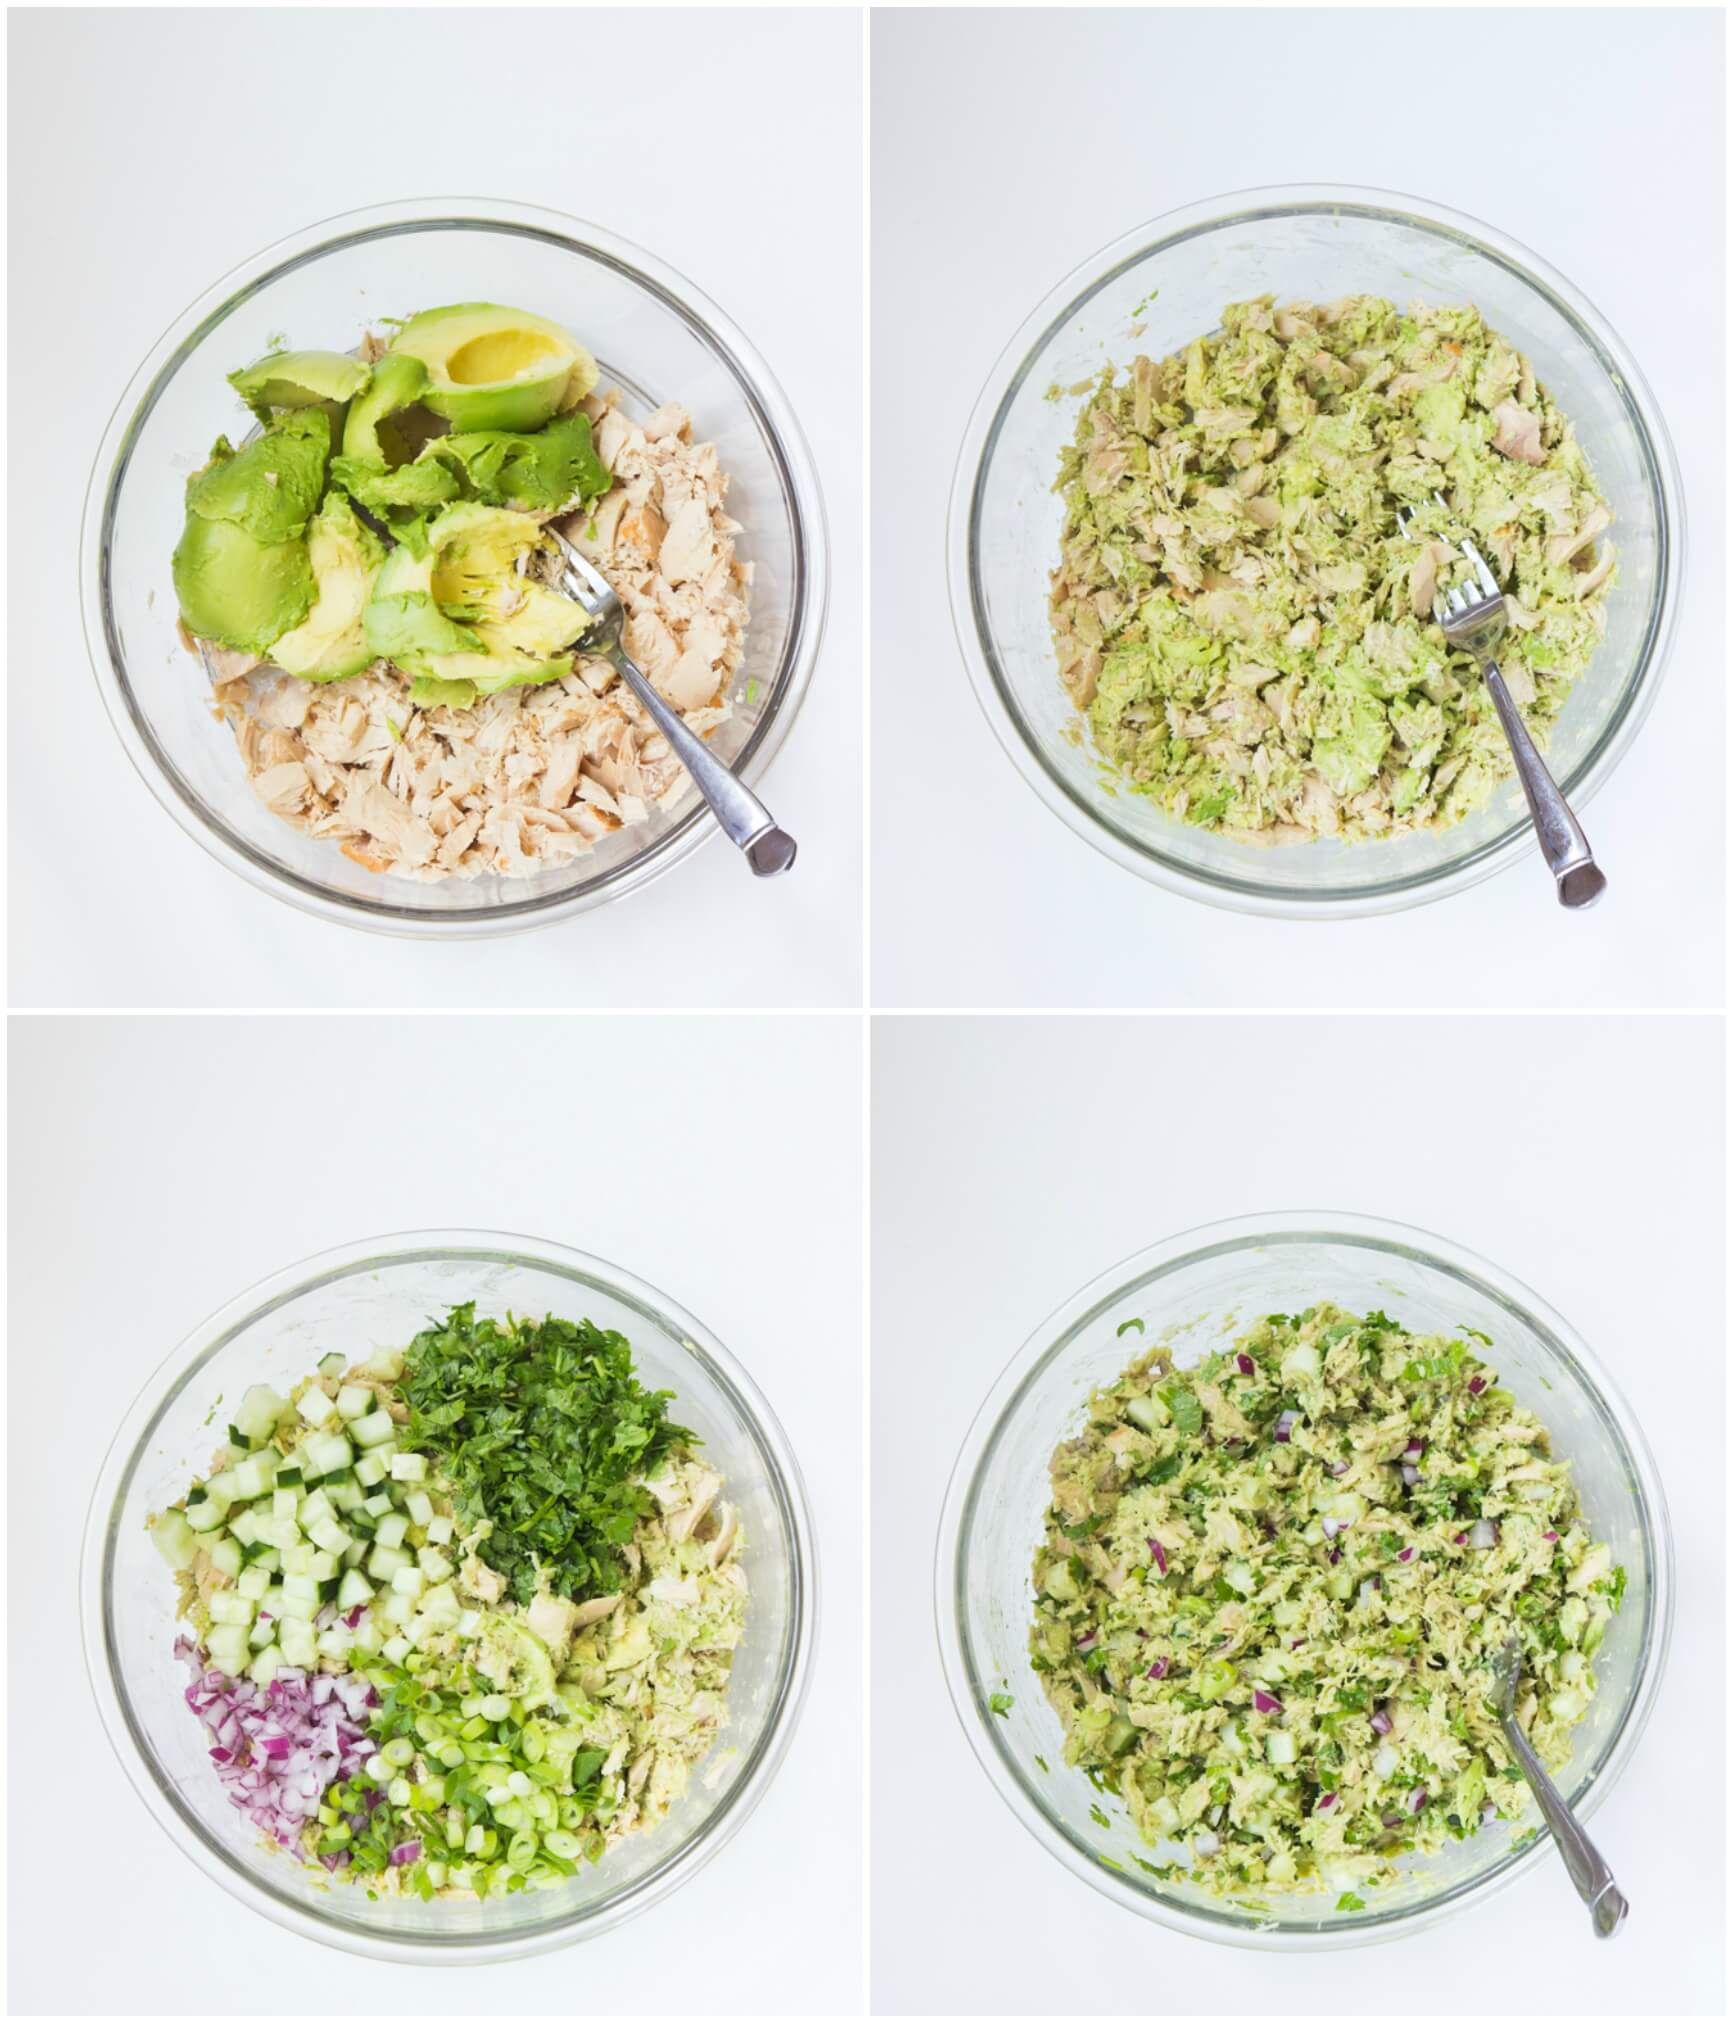 Healthy avocado tuna salad with creamy avocado, fresh herbs, cucumber, red onion, and lime juice. No mayo and paleo friendly! | littlebroken.com @littlebroken